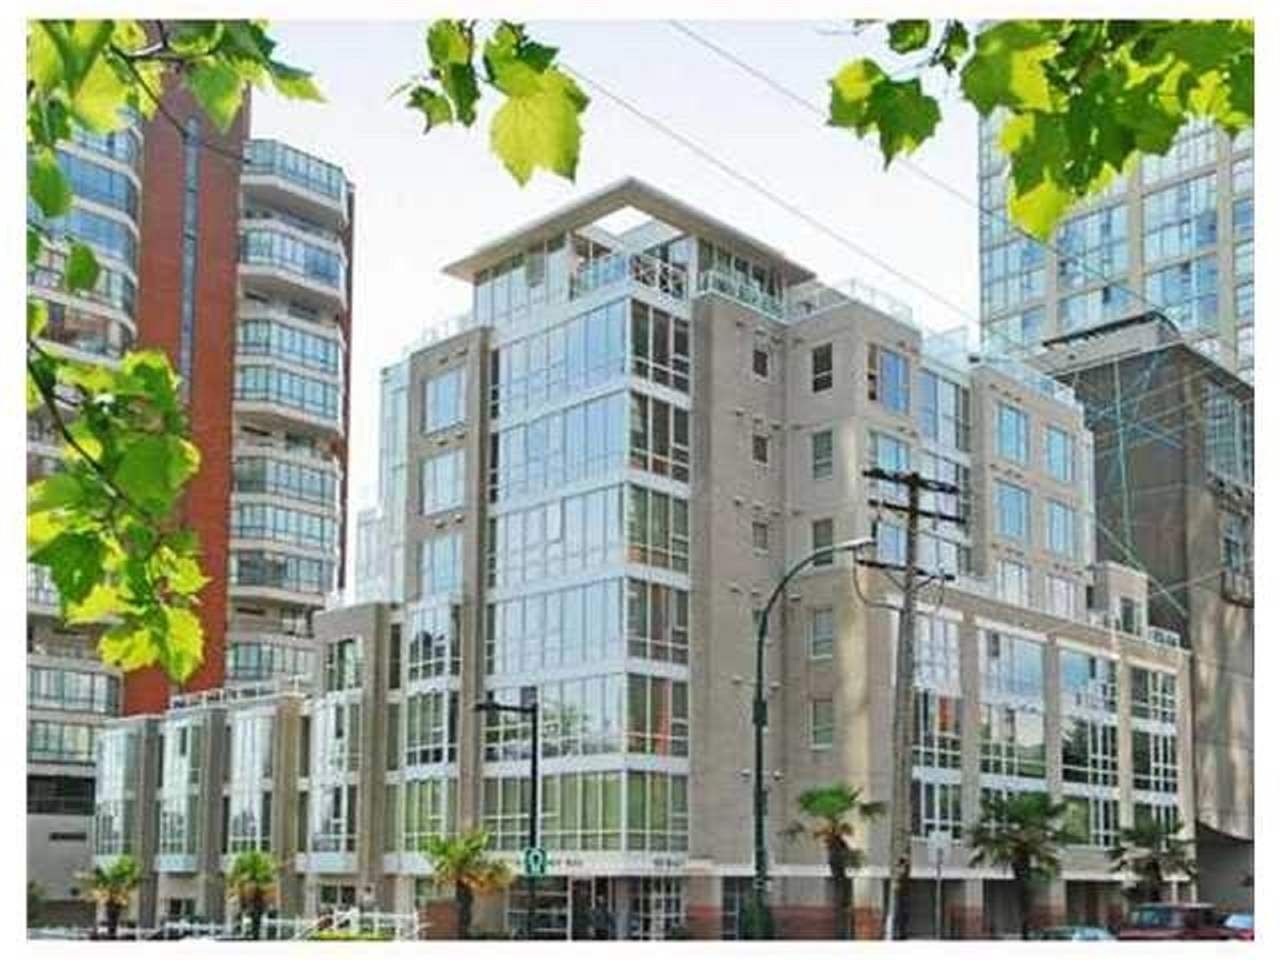 """Main Photo: 310 910 BEACH Avenue in Vancouver: Yaletown Condo for sale in """"THE MERIDIAN"""" (Vancouver West)  : MLS®# R2513951"""